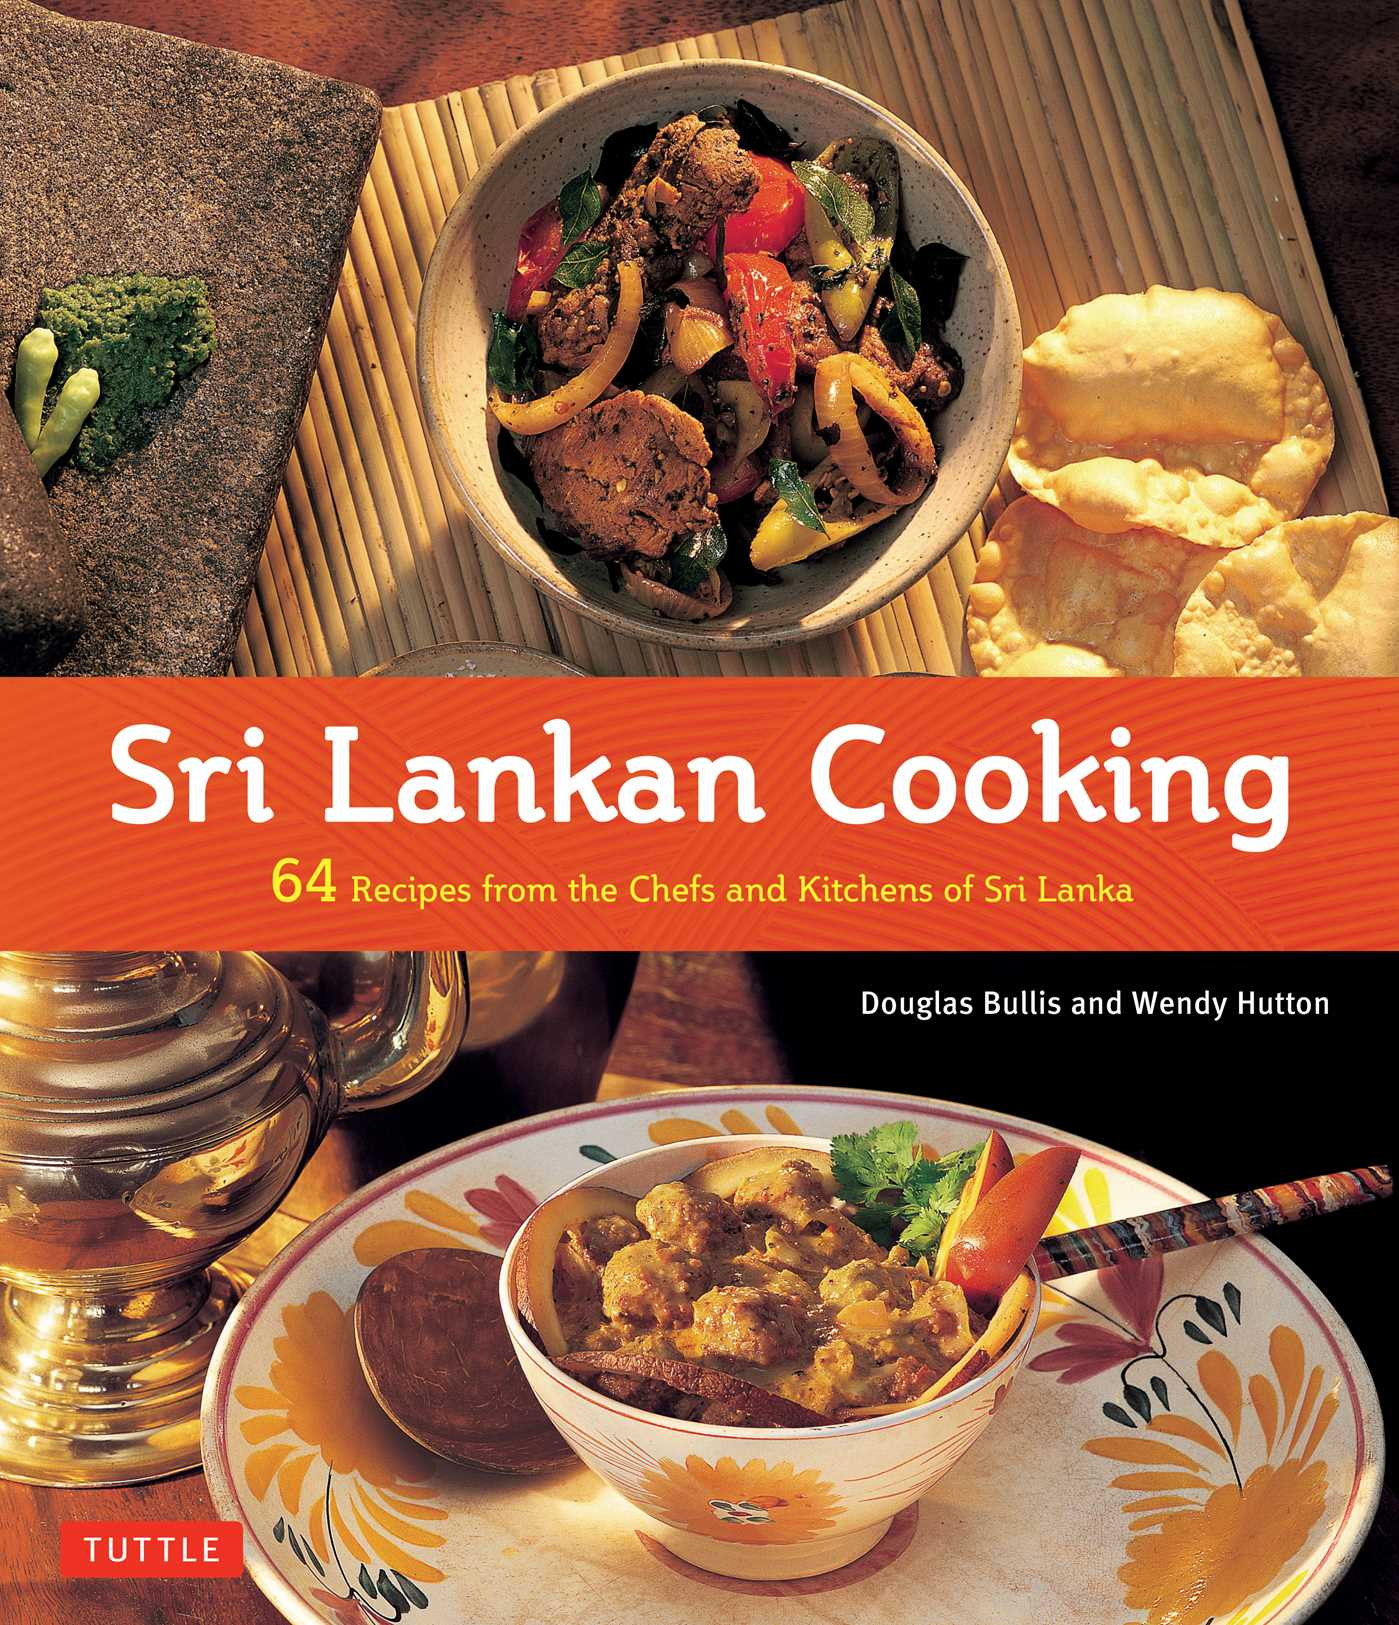 Sri Lankan Cooking : 64 Recipes from the Chefs and Kitchens of Sri Lanka